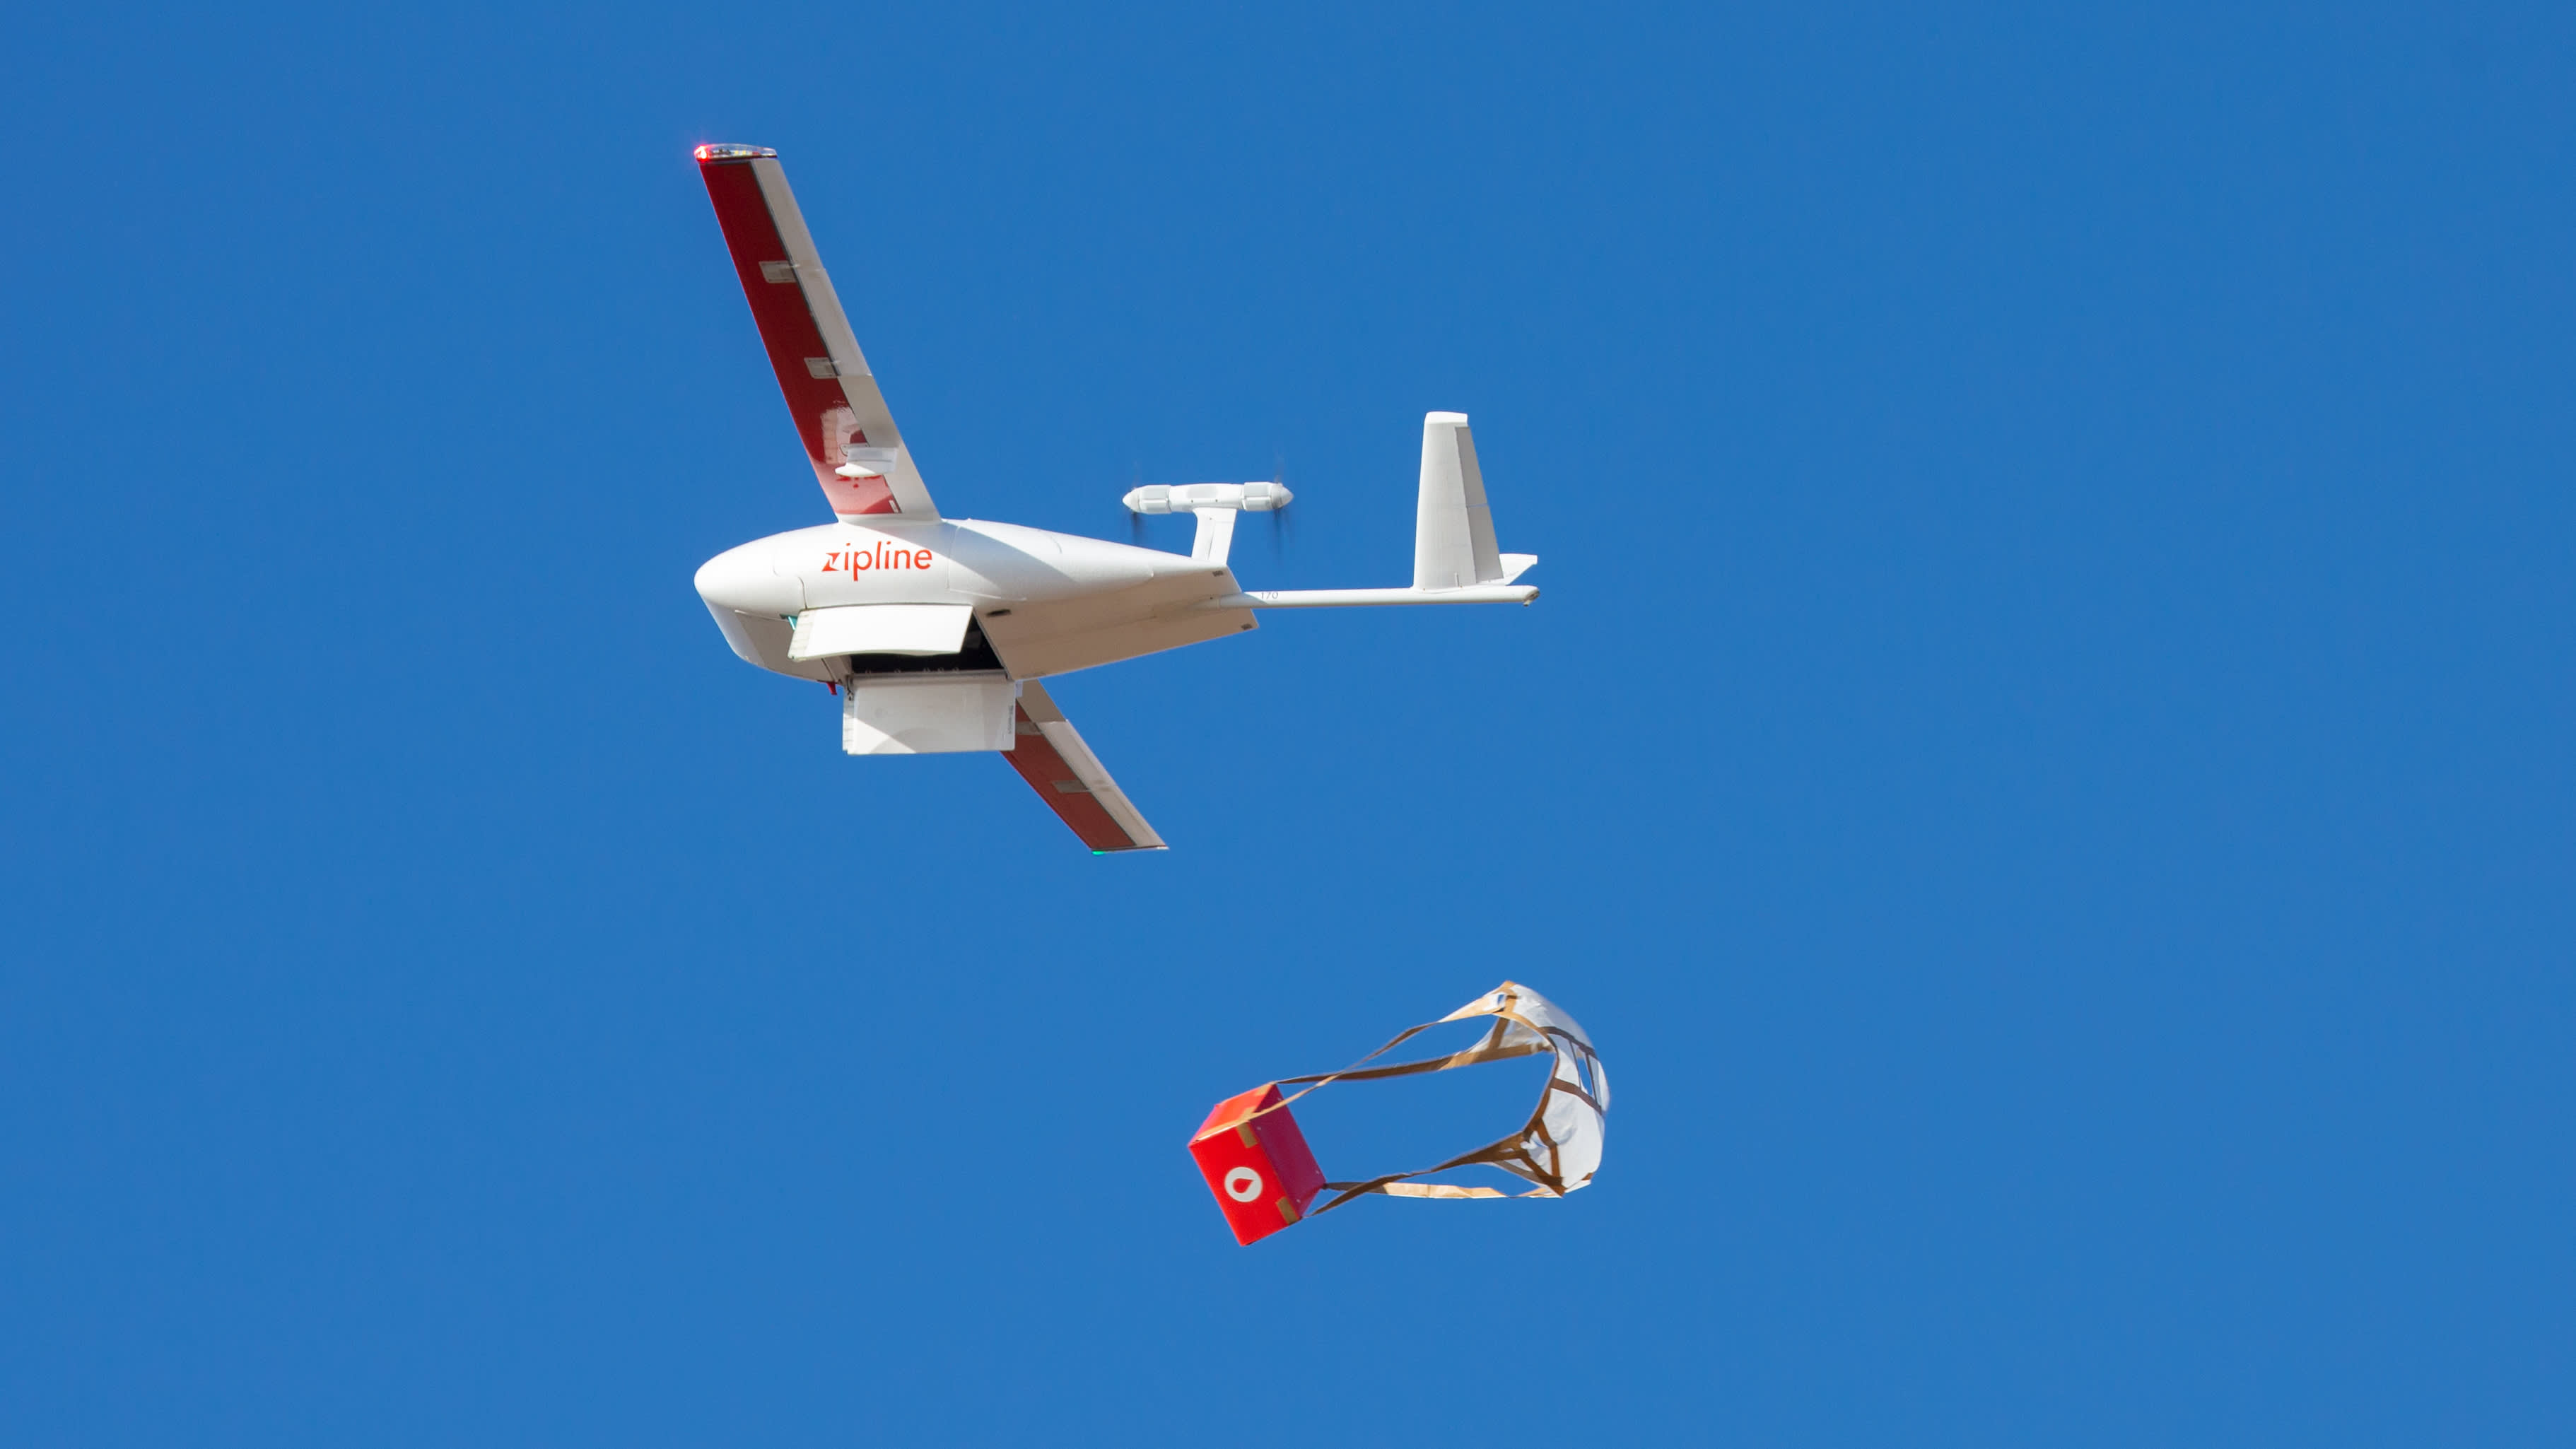 Zipline, medical delivery drone start-up, now valued at $1 2